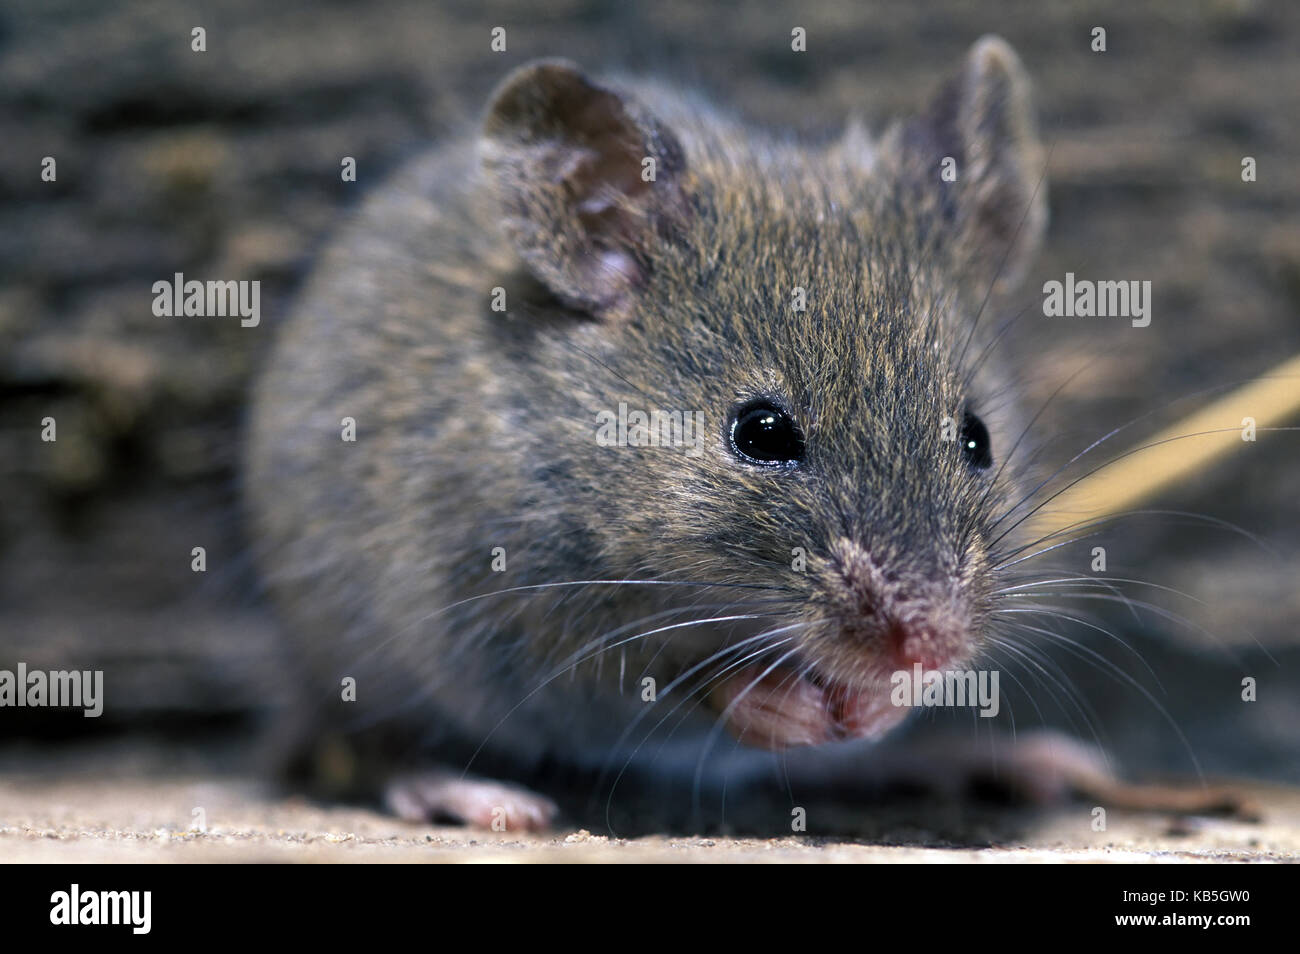 House mouse, Mus domesticus. Eating weat on a barn. Portugal - Stock Image